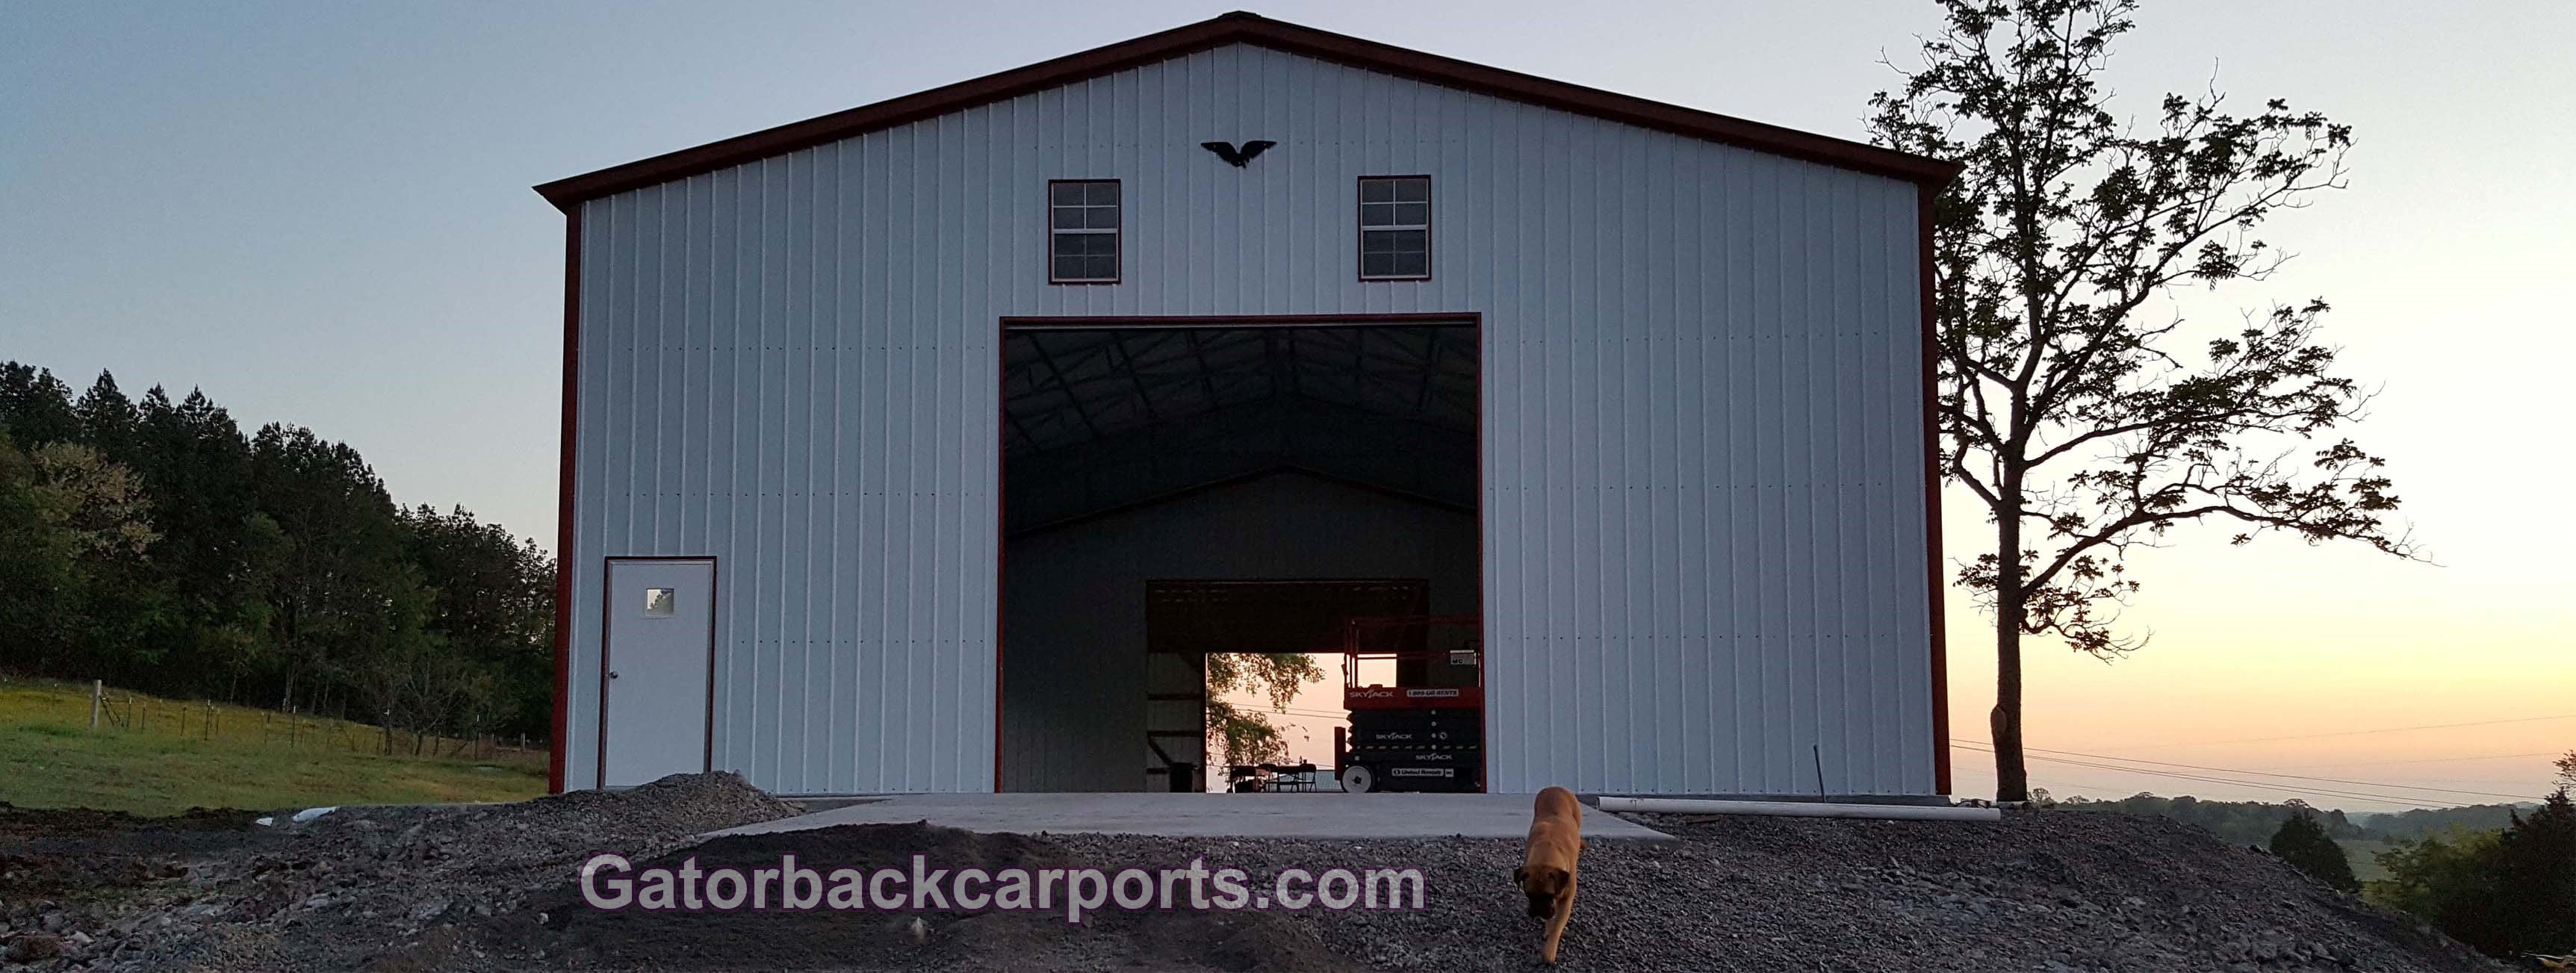 Garages gallery gatorback carports for Tall garage doors